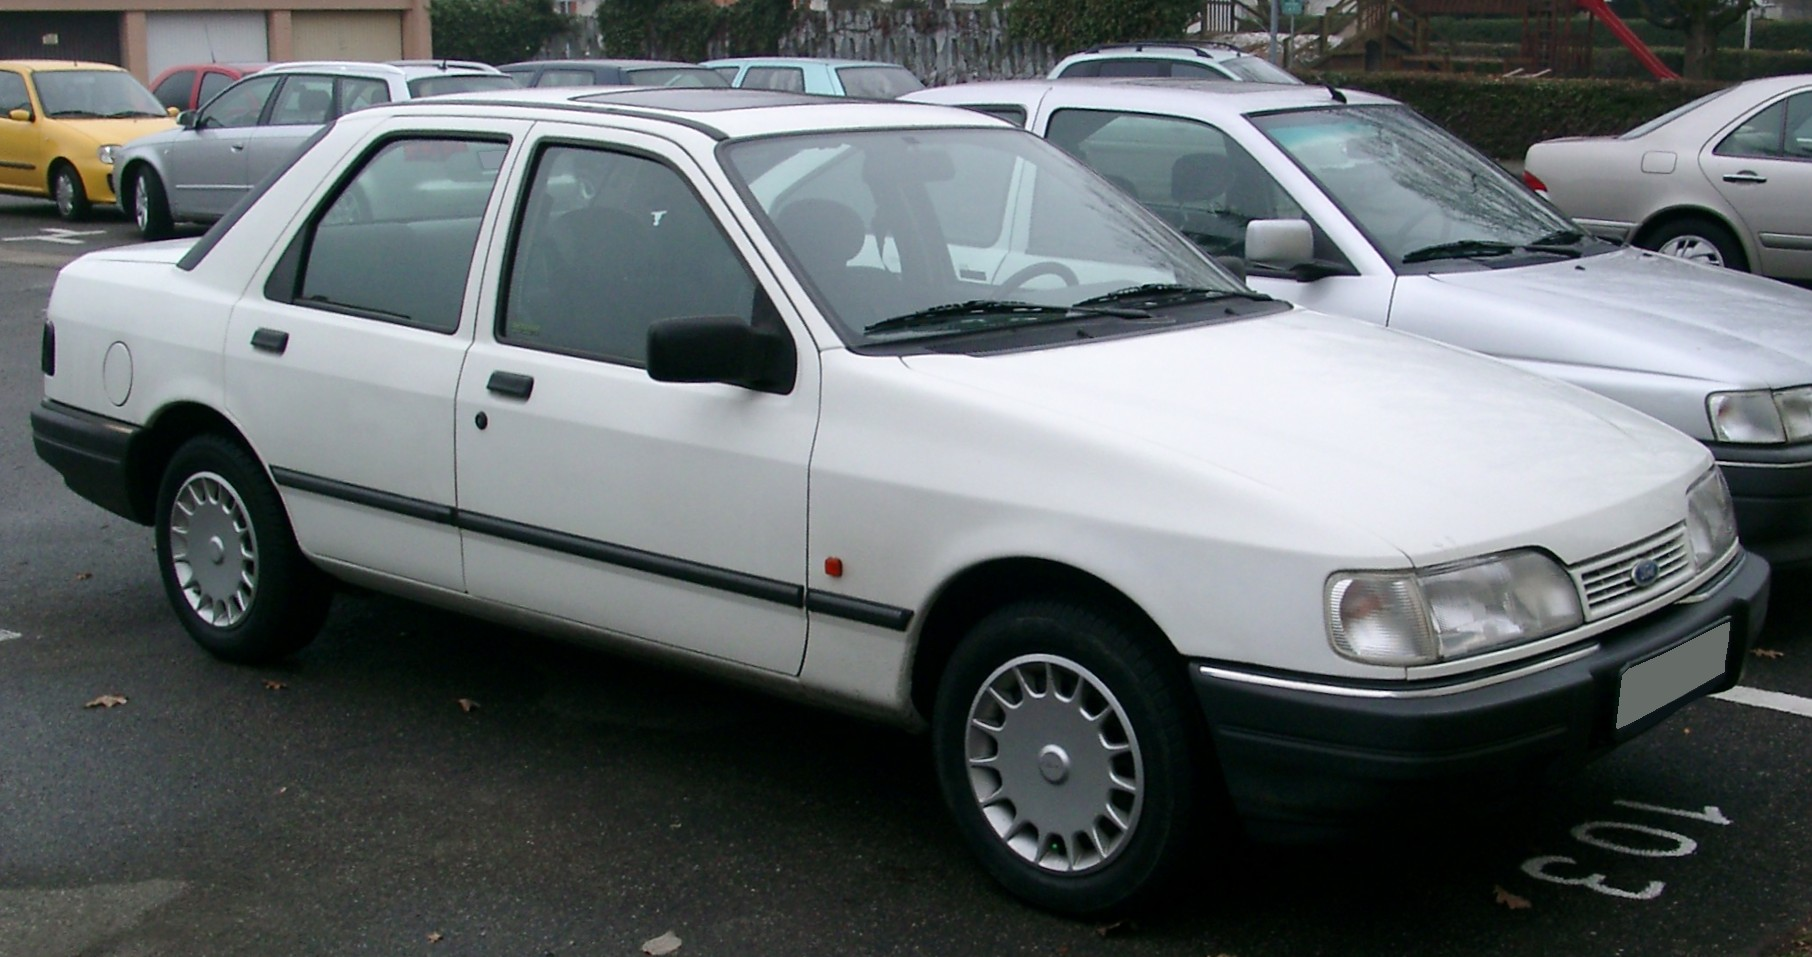 Ford Car Parts File:Ford Sierra front 20071228.jpg - Wikimedia Commons